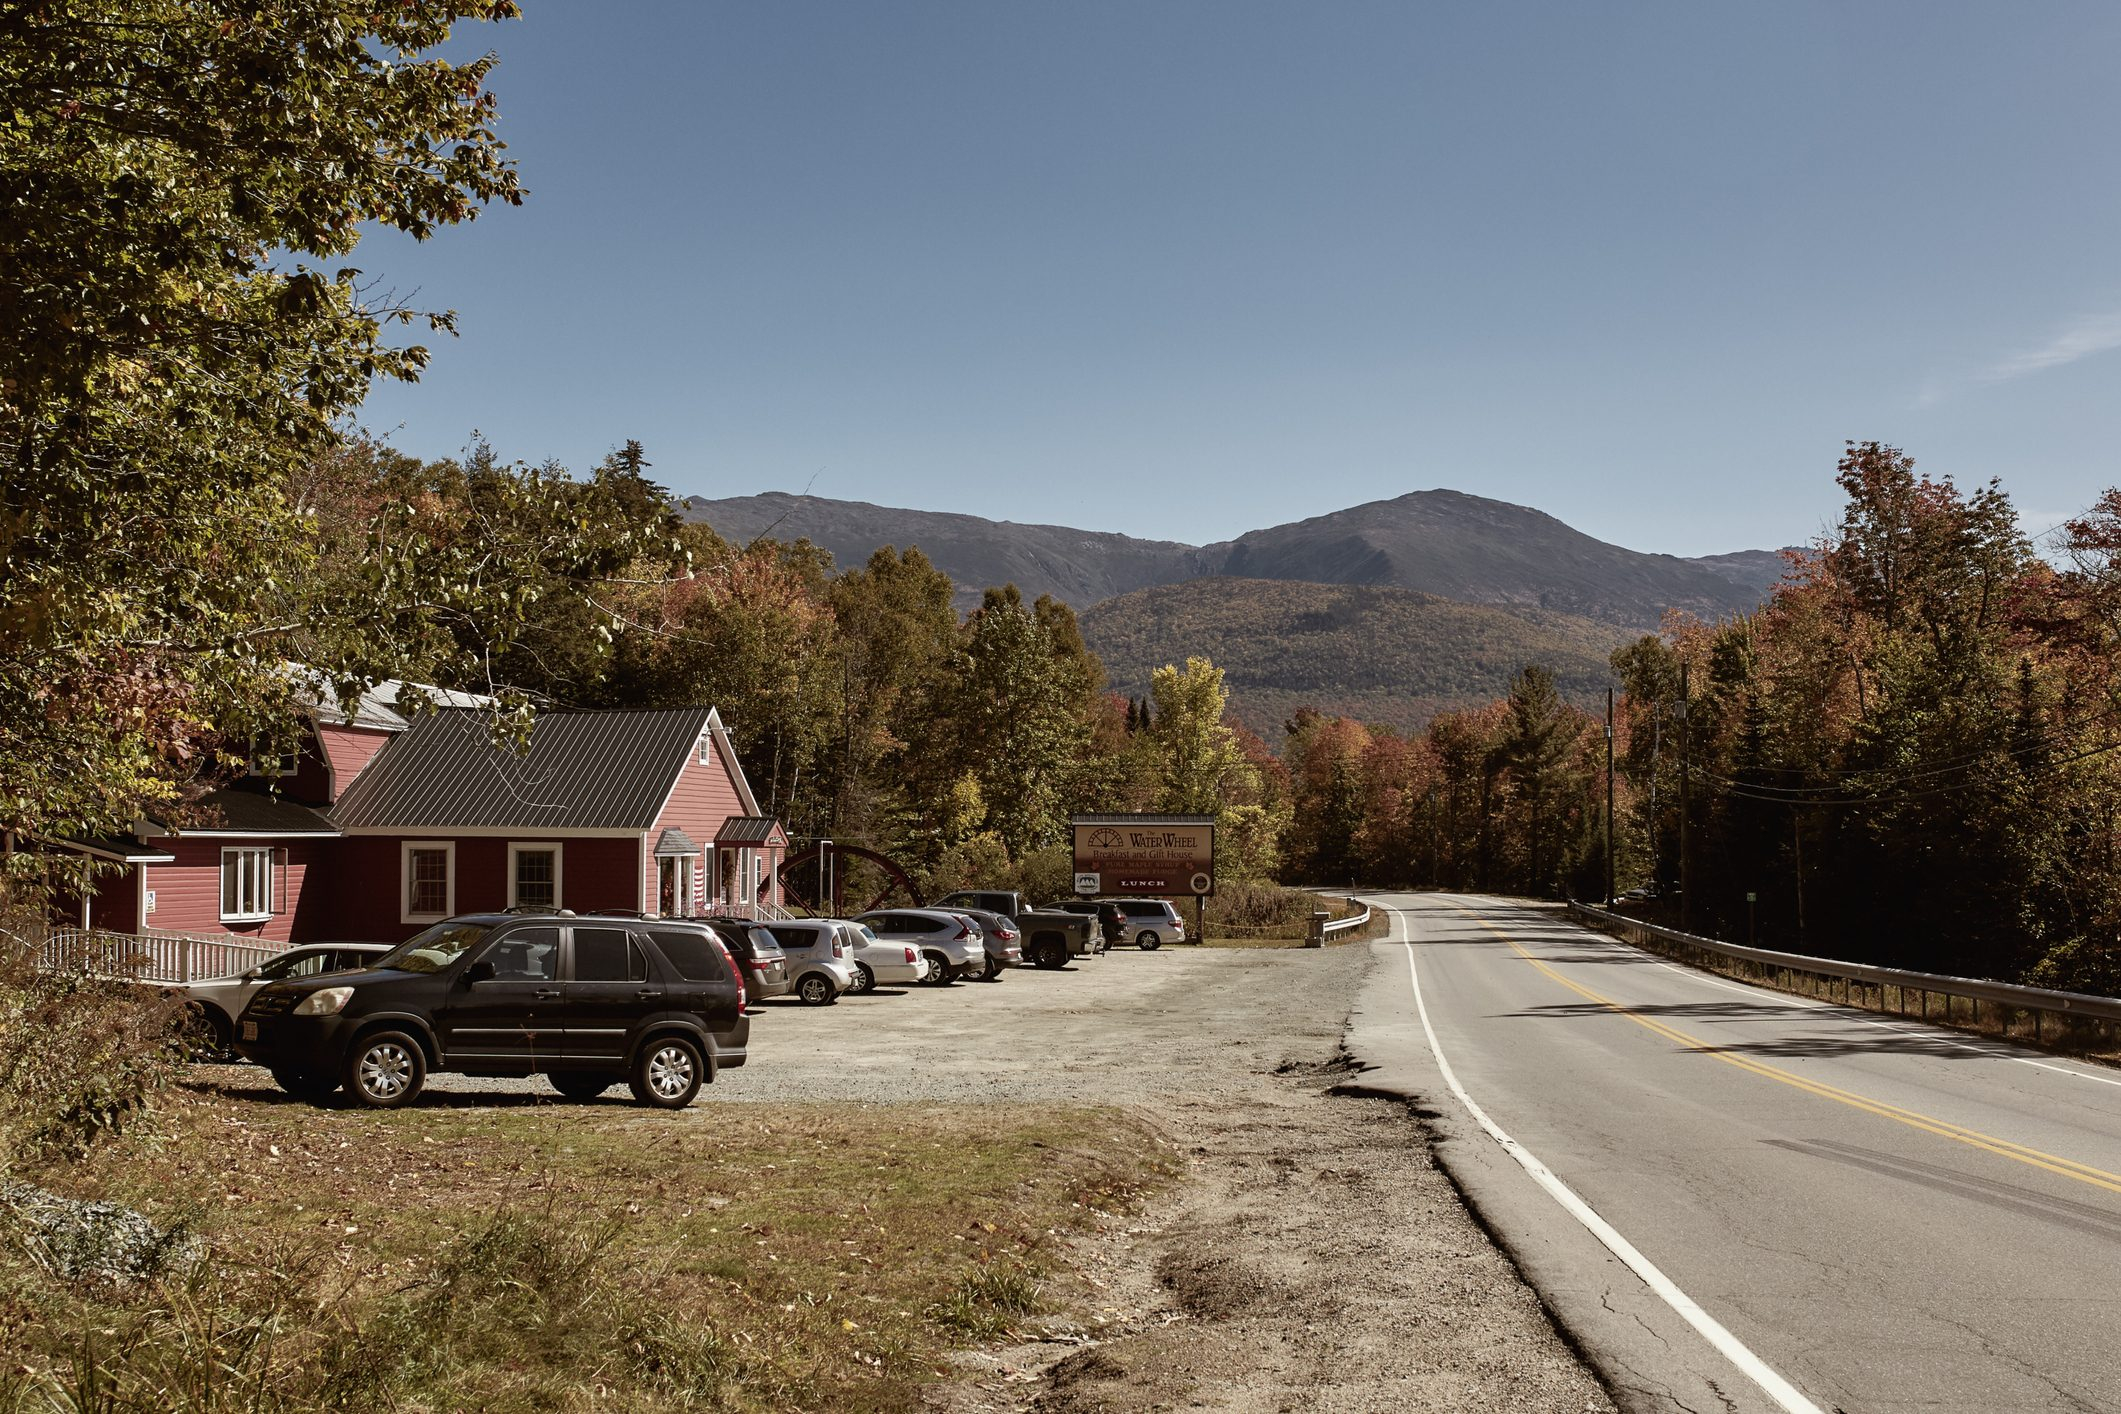 New England Road Trip in the Fall